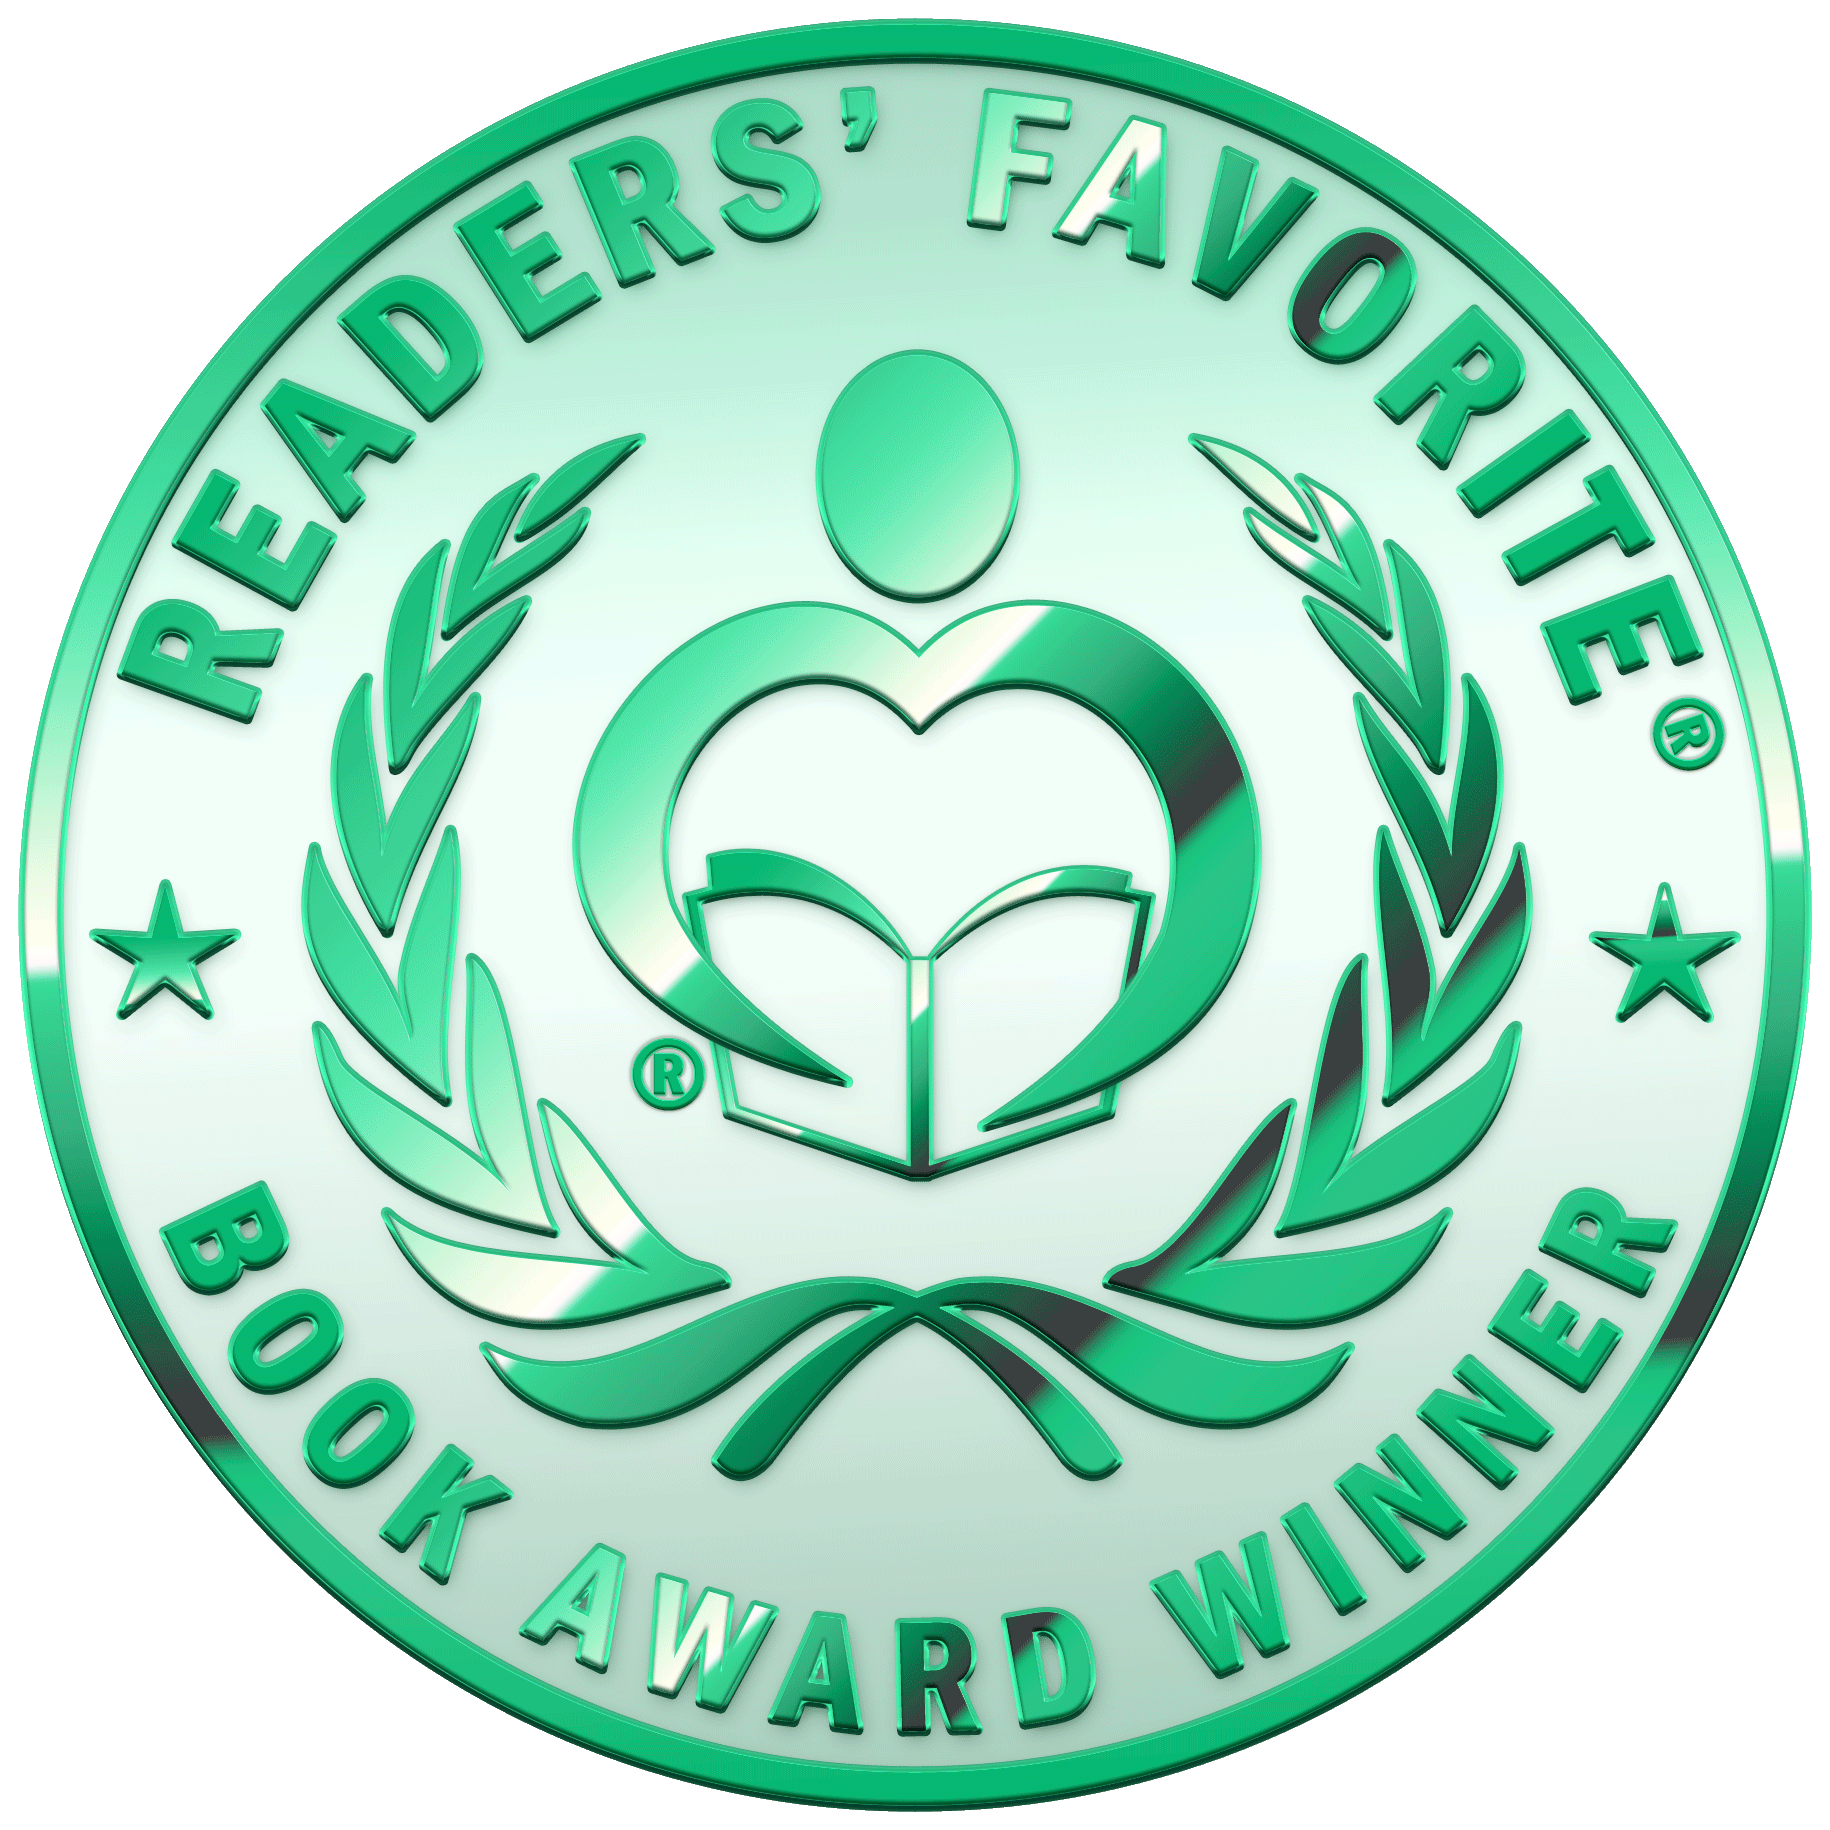 readers-favorite-award-winner.png